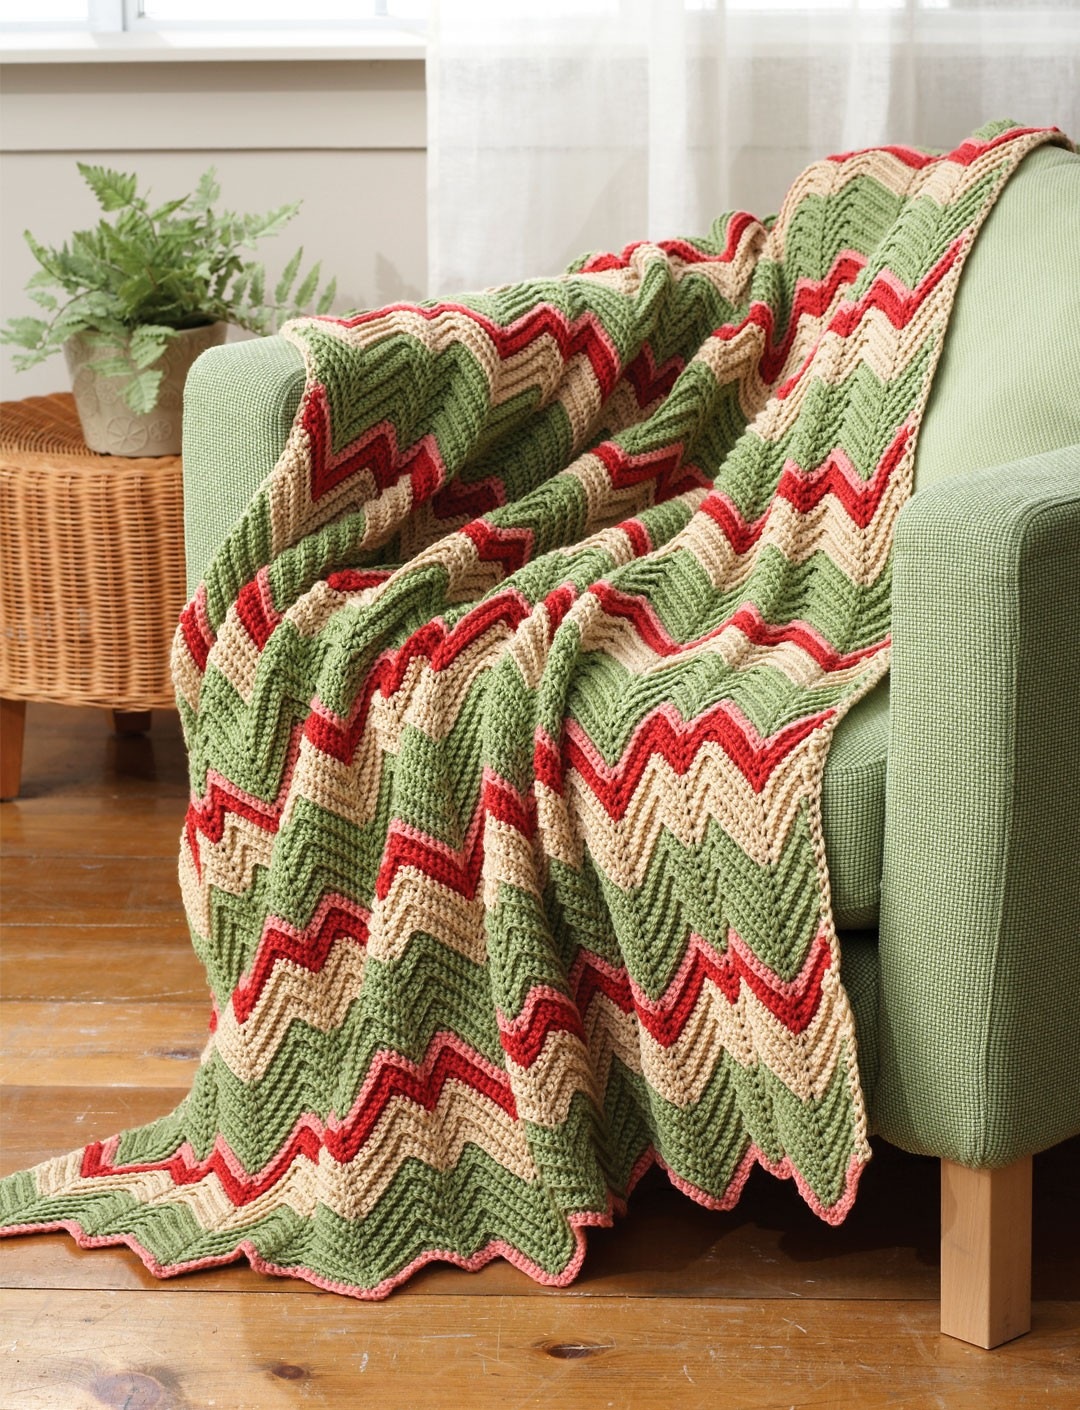 Crocheting A Zig Zag Afghan : Zig-Zag Afghan - Patterns Yarnspirations